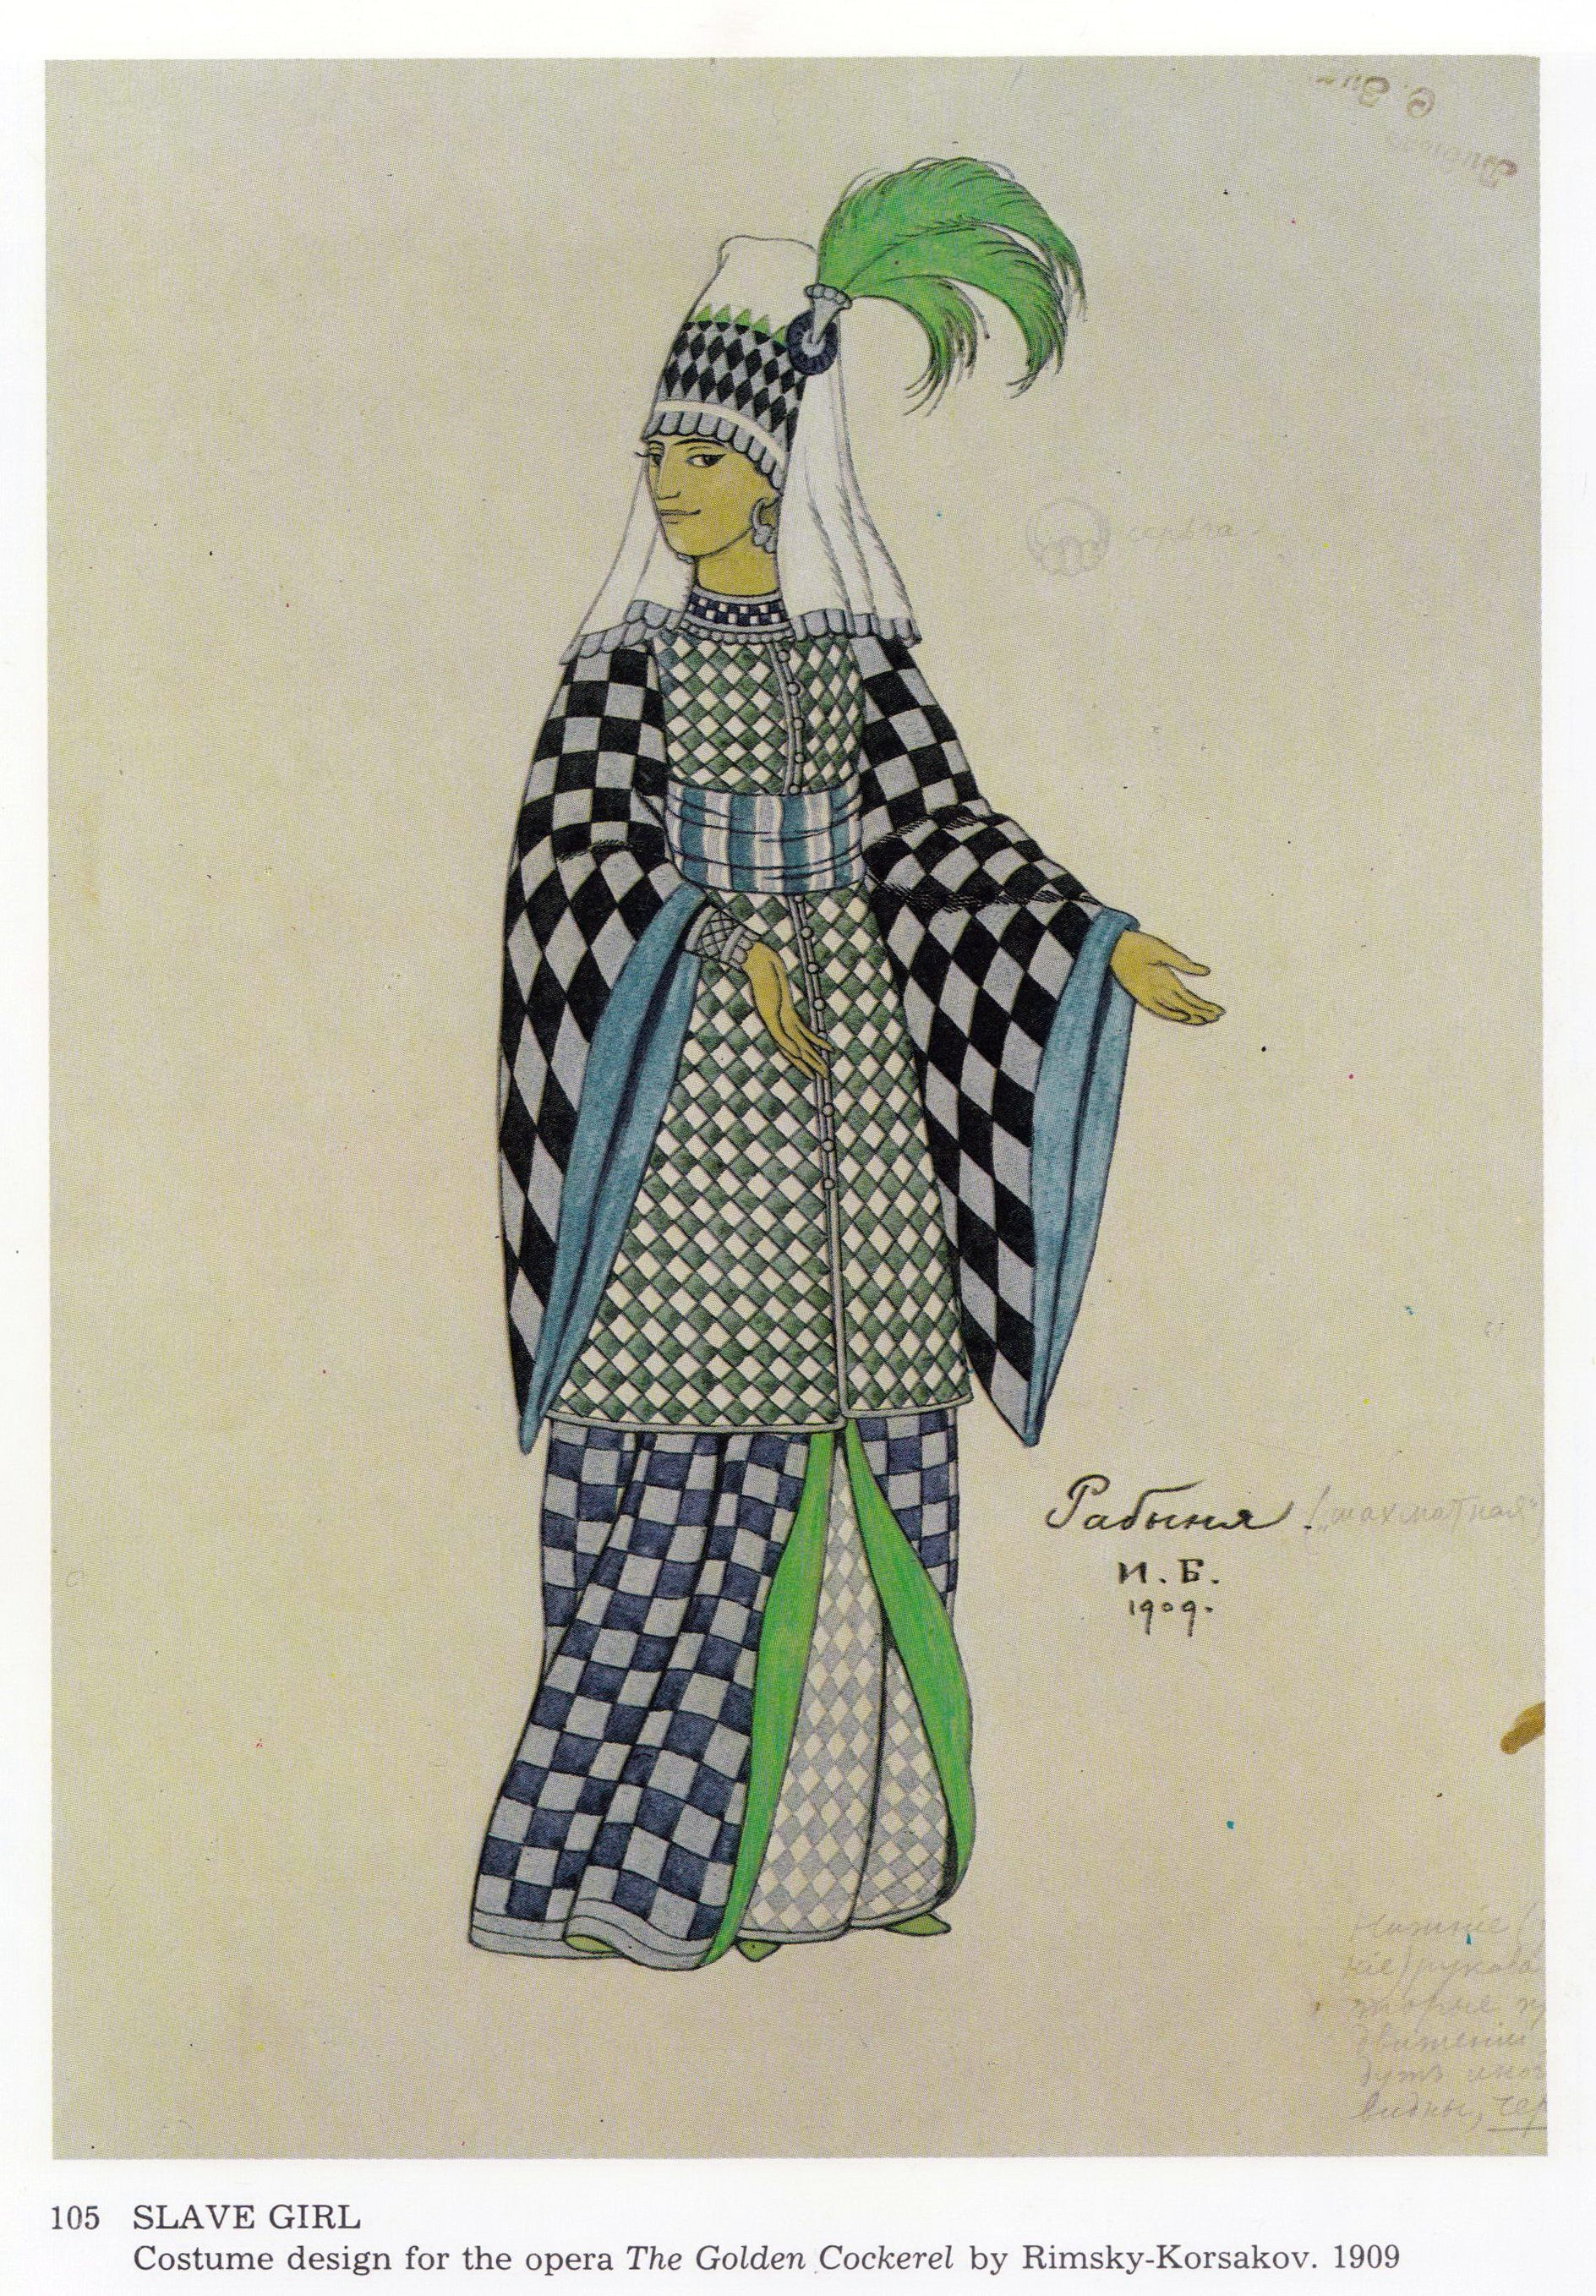 SLAVE GIRL. Costume design for the opera 'The Golden Cockerel' by Rimsky-Korsakov. 1909.